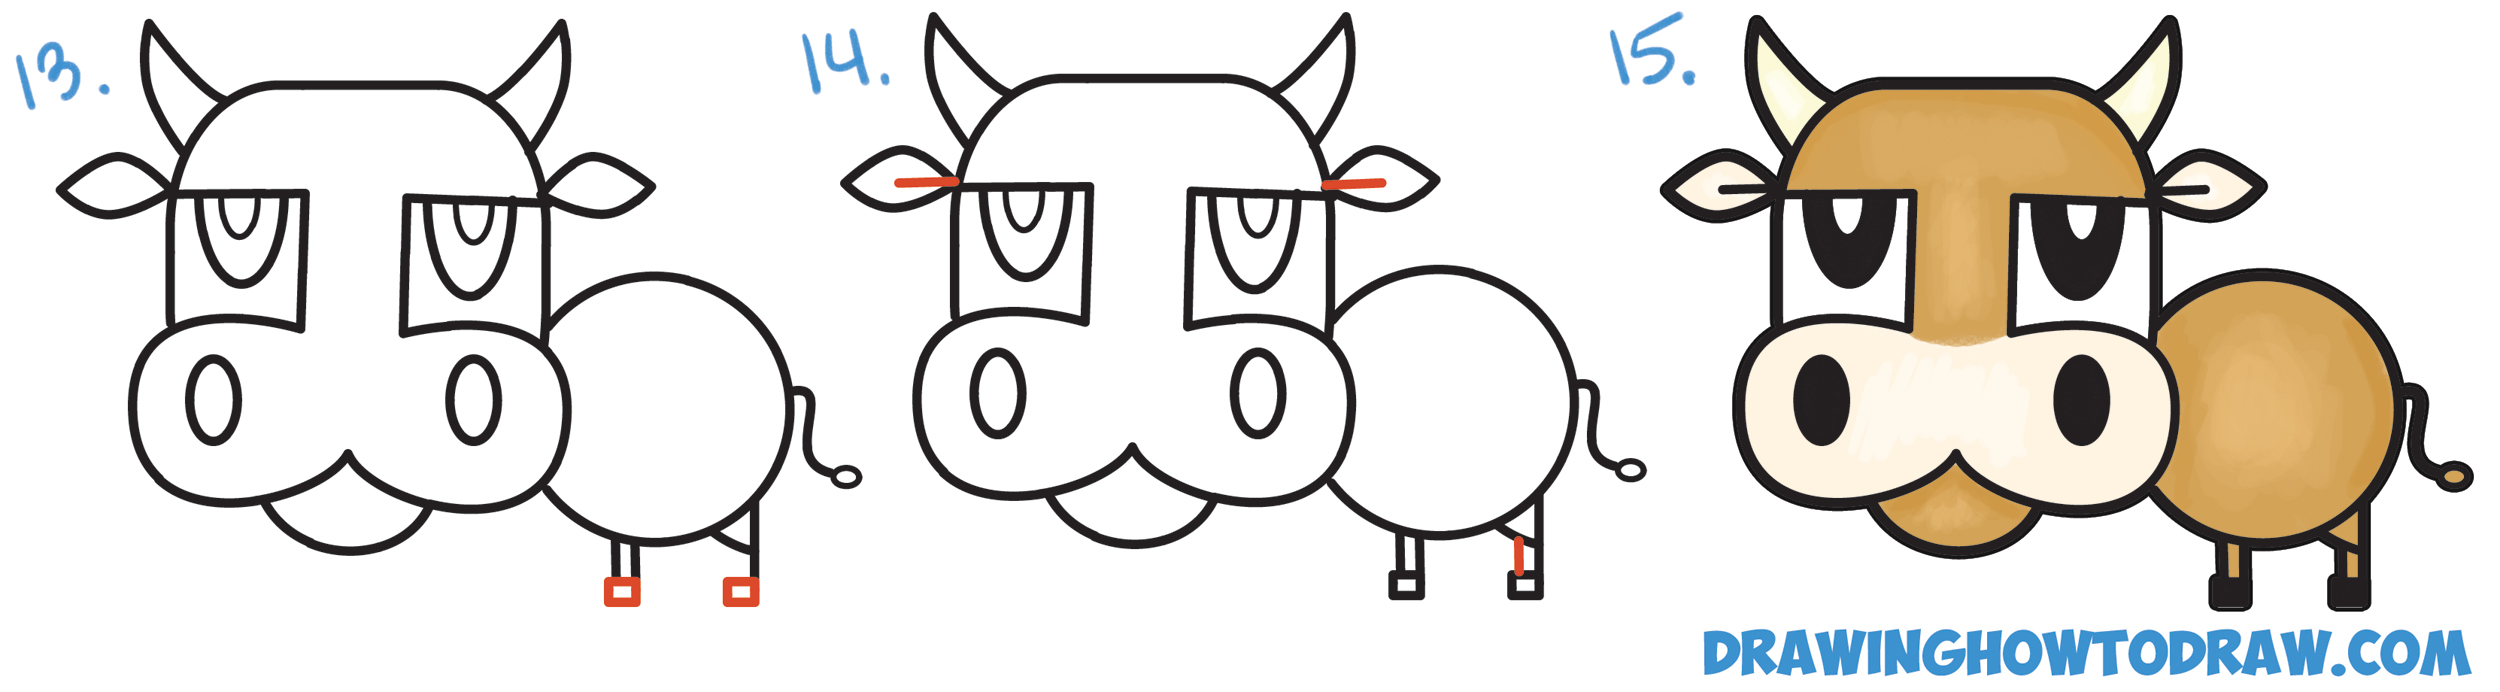 2500x692 How To Draw A Cartoon Bull Cow From Numbers Amp Letters Easy Step